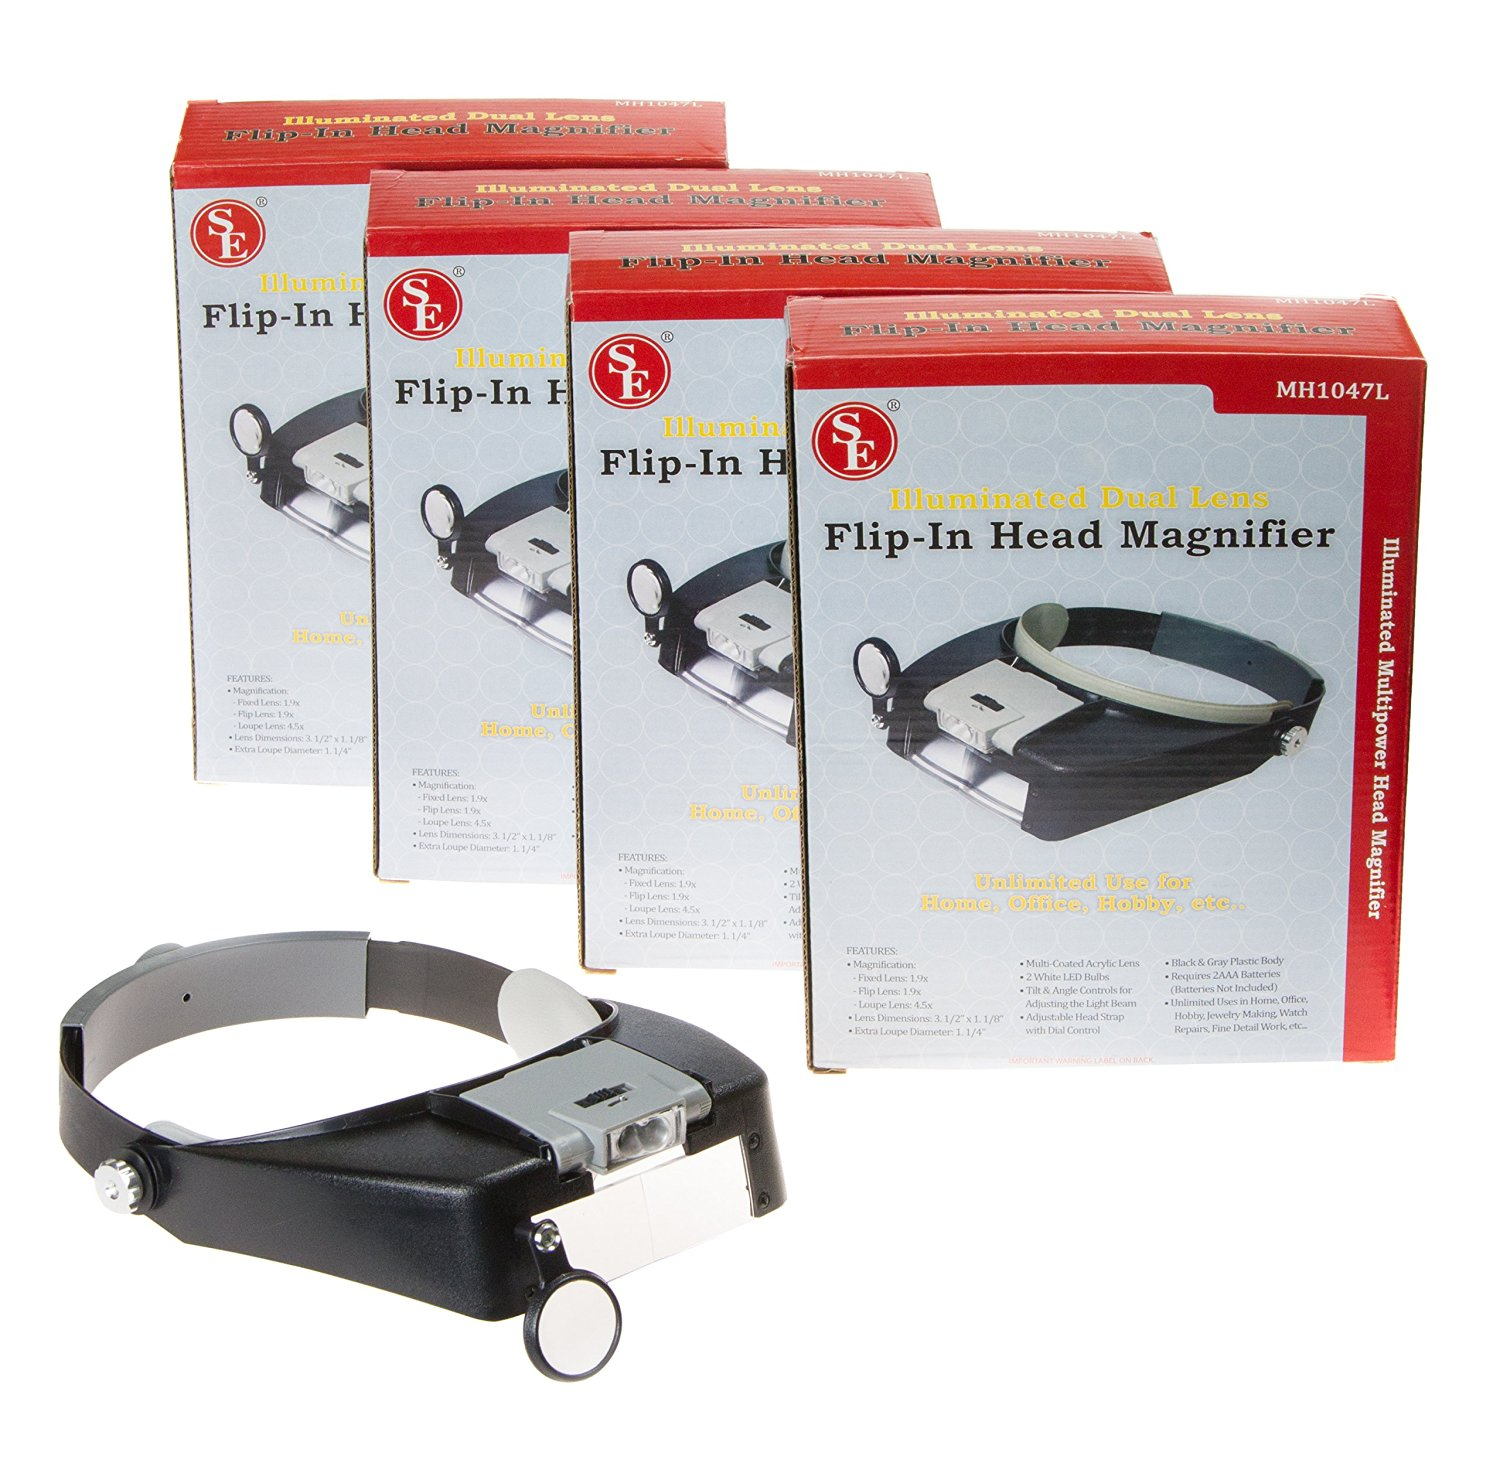 SE MH1047L-4 Illuminated Dual Lens LED Flip-In Head Magnifier (Pack of 4)